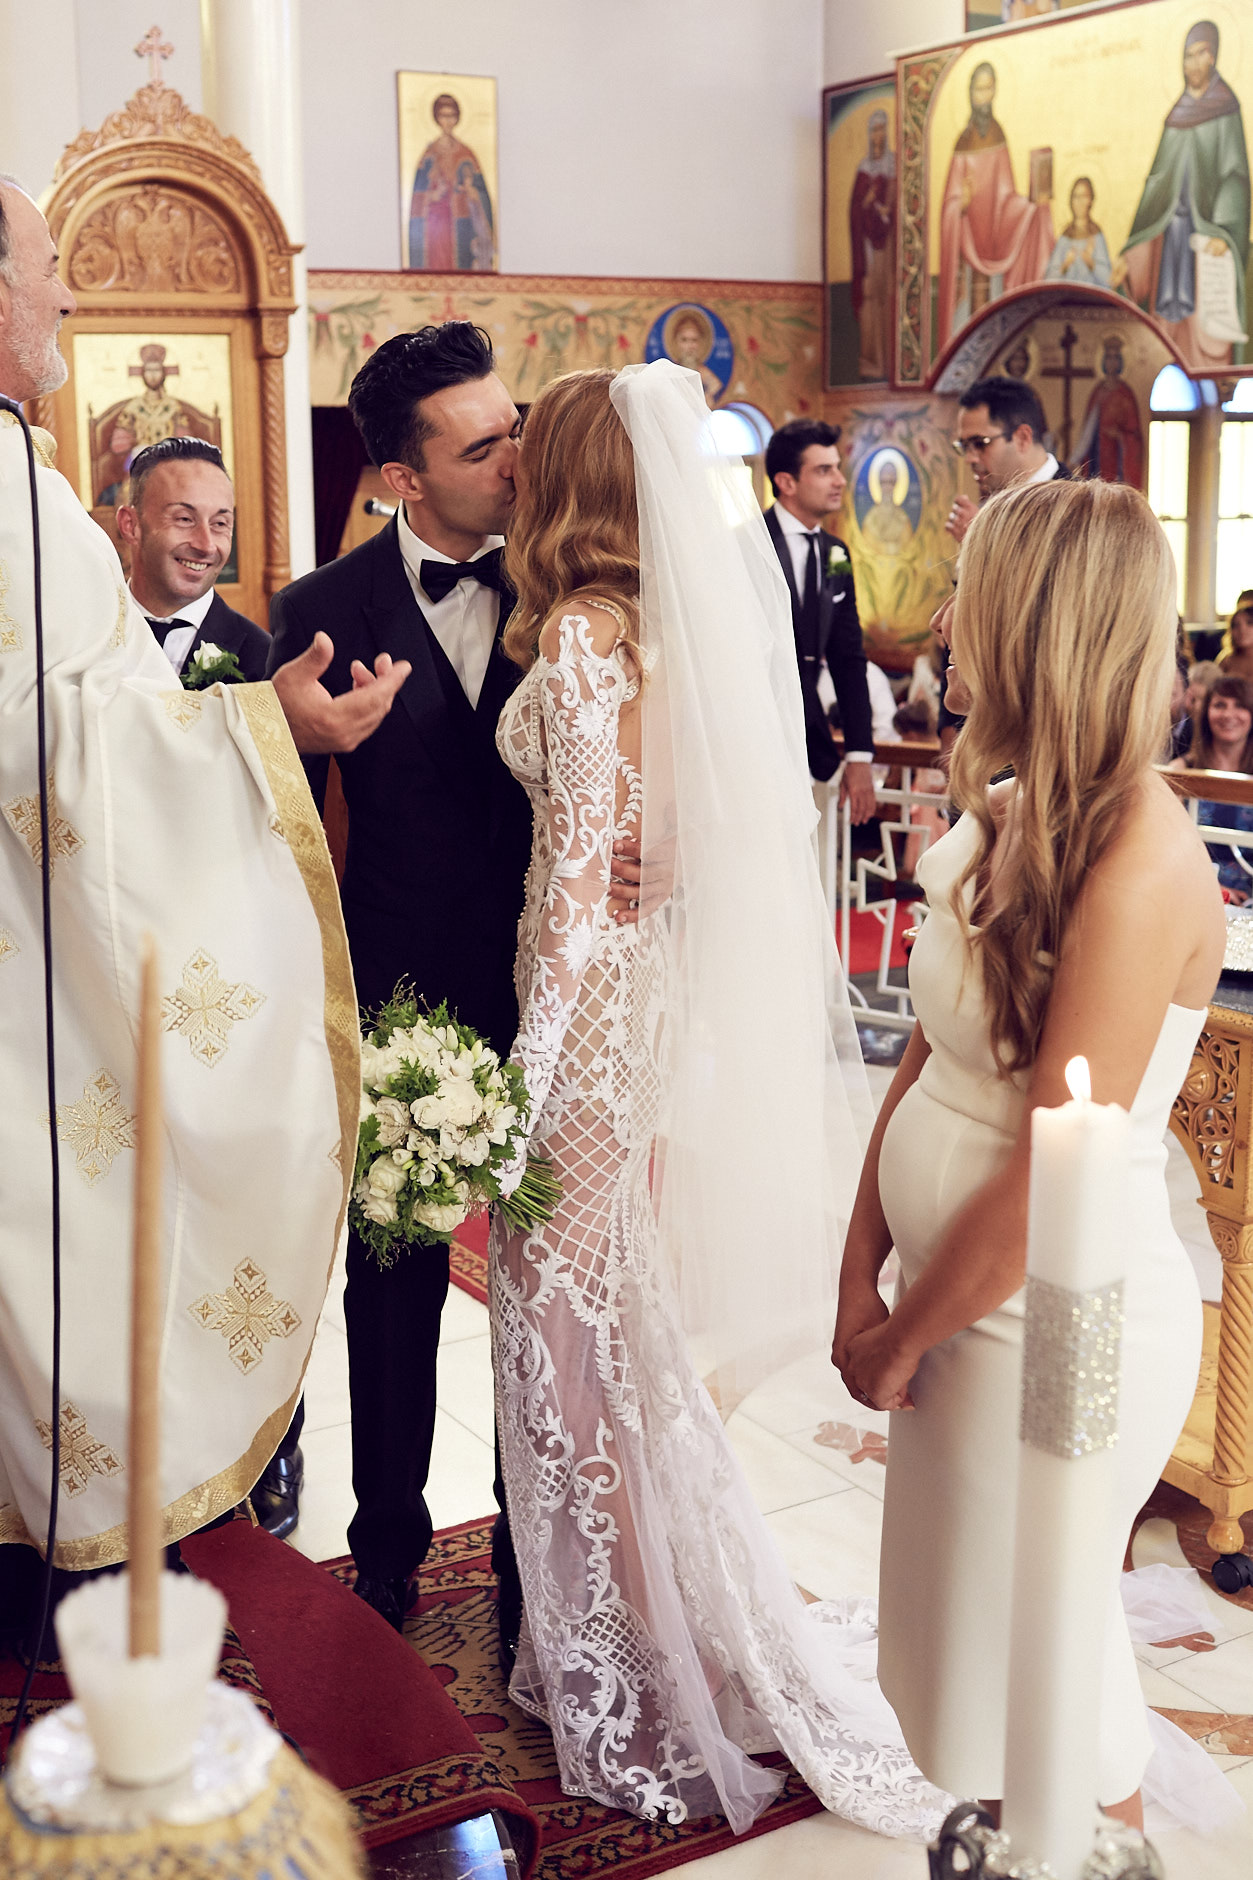 Greek Orthodox church wedding Melbourne By Lost In Love Photography